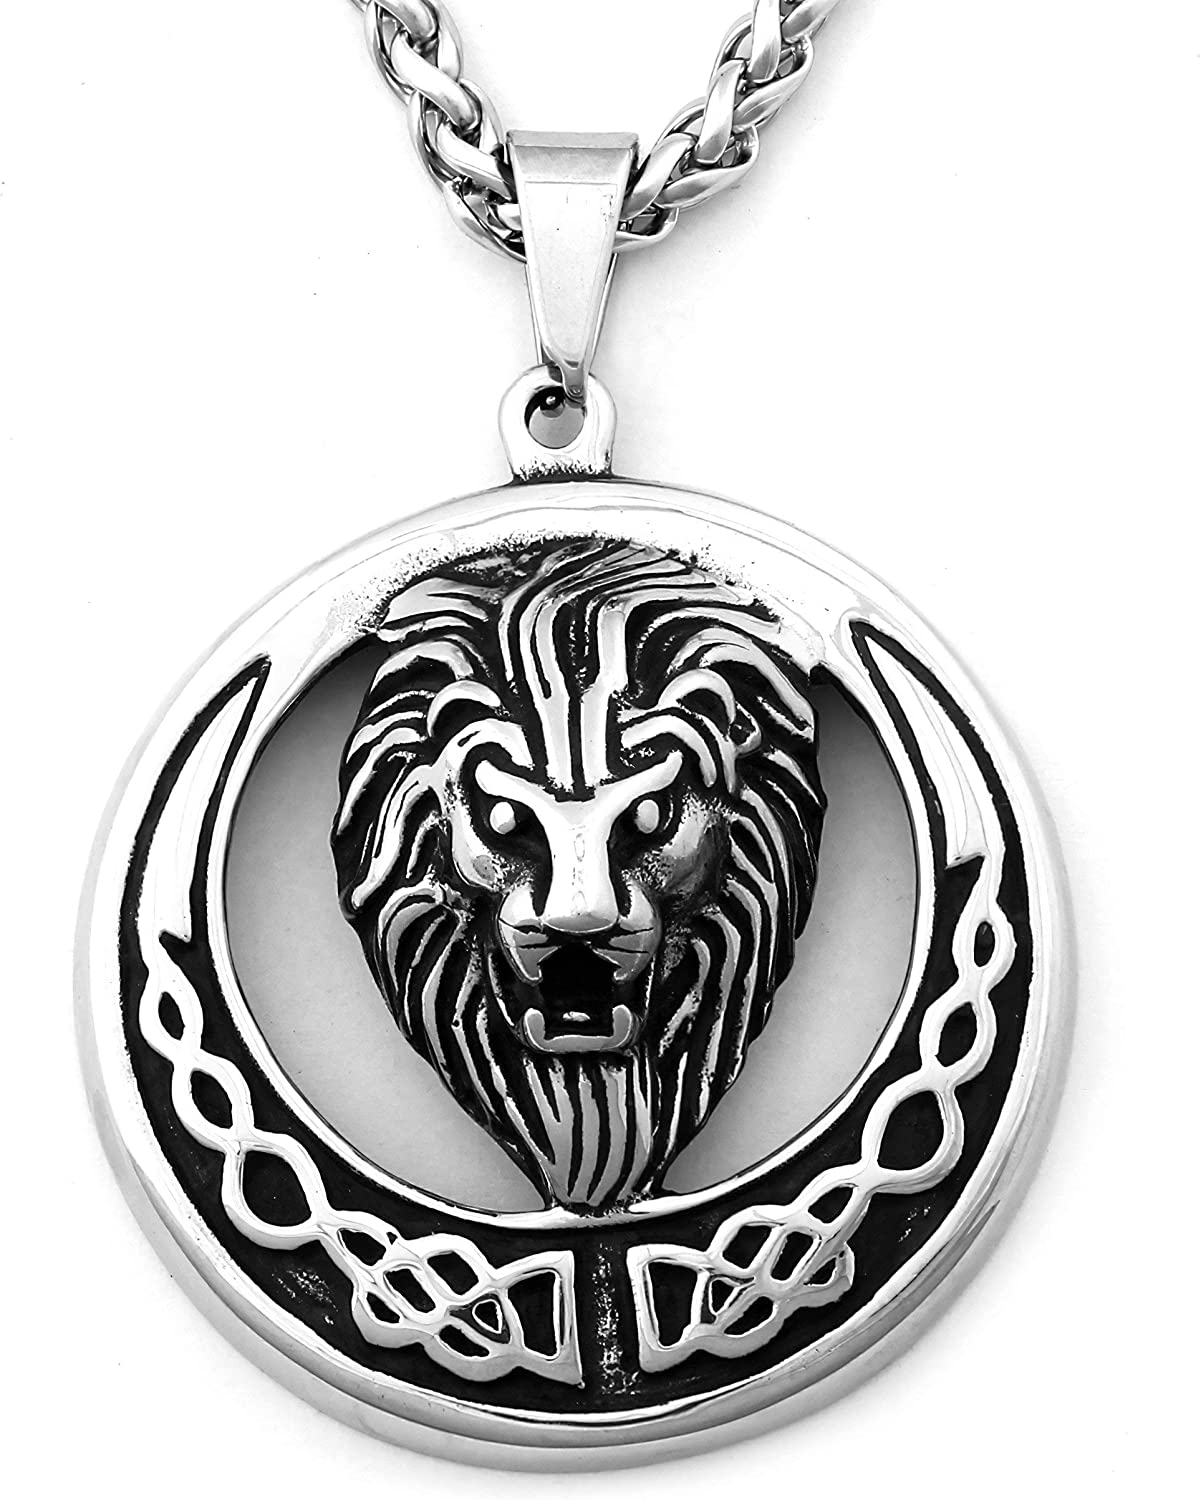 Warvik Crown Head Lion King Pendant Necklace Hip Hop Fashion Style, Stainless Steel Jewelry Mens Womens Wheat Chain 20/28inch